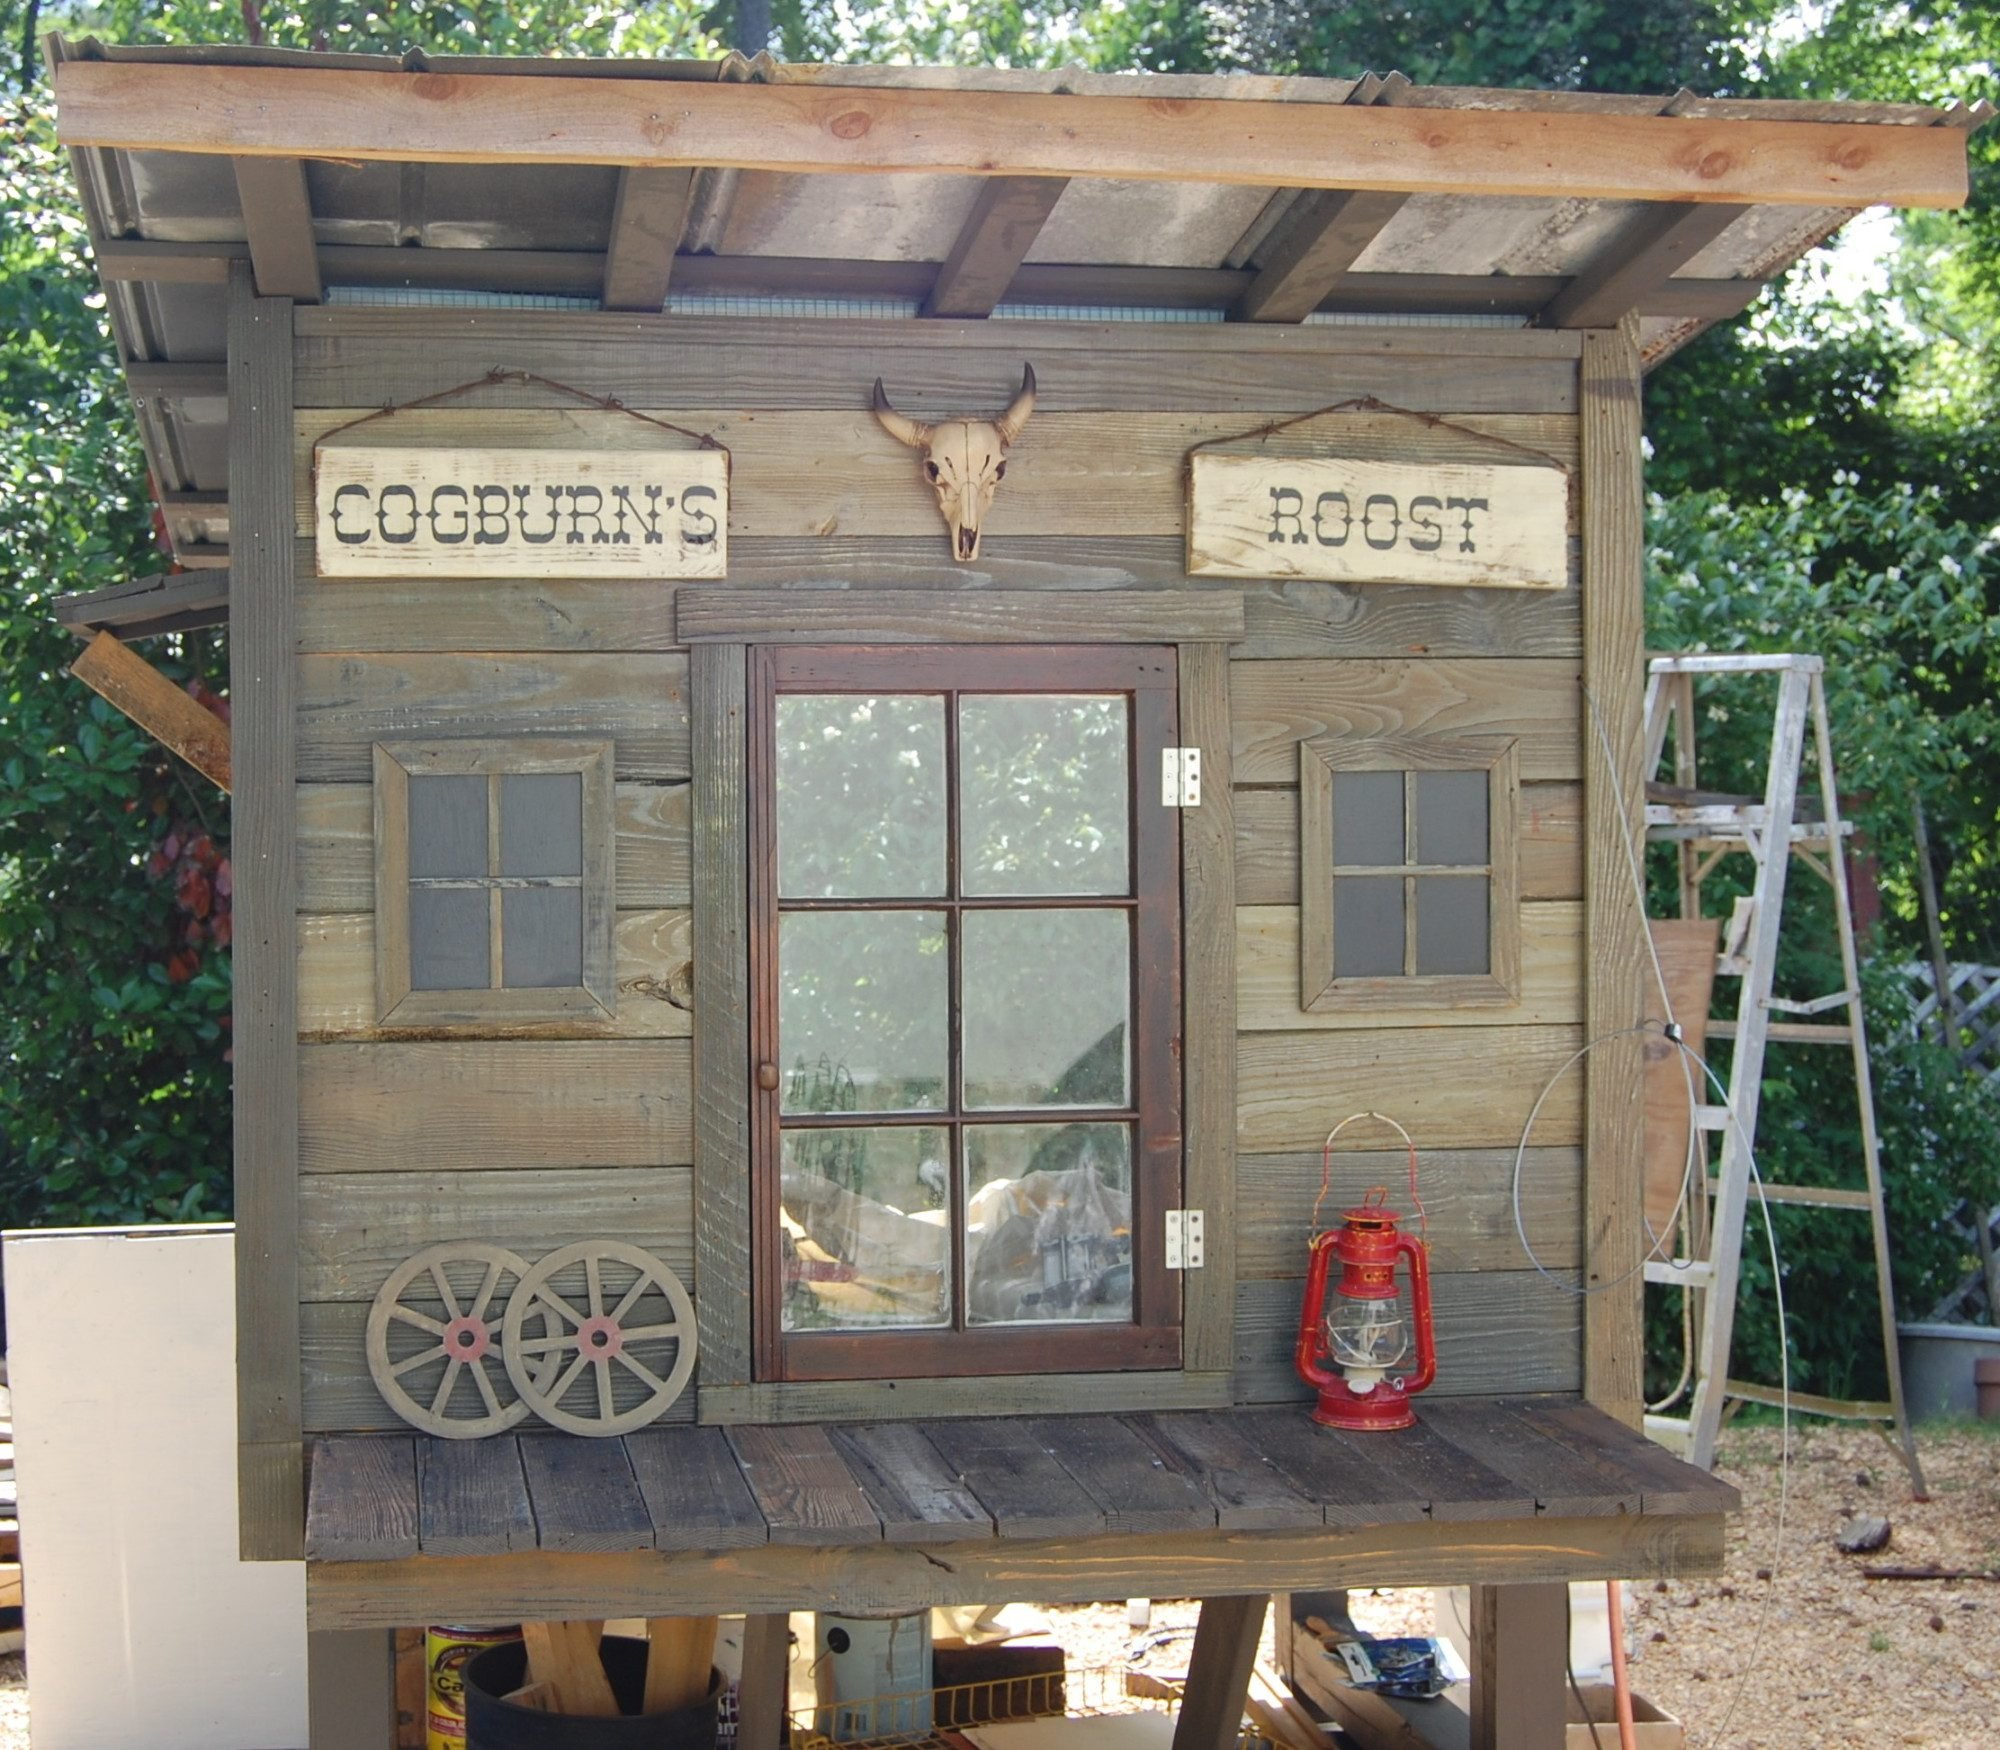 The Old West Rooster Cogburn Red Lobster Pallet Coop